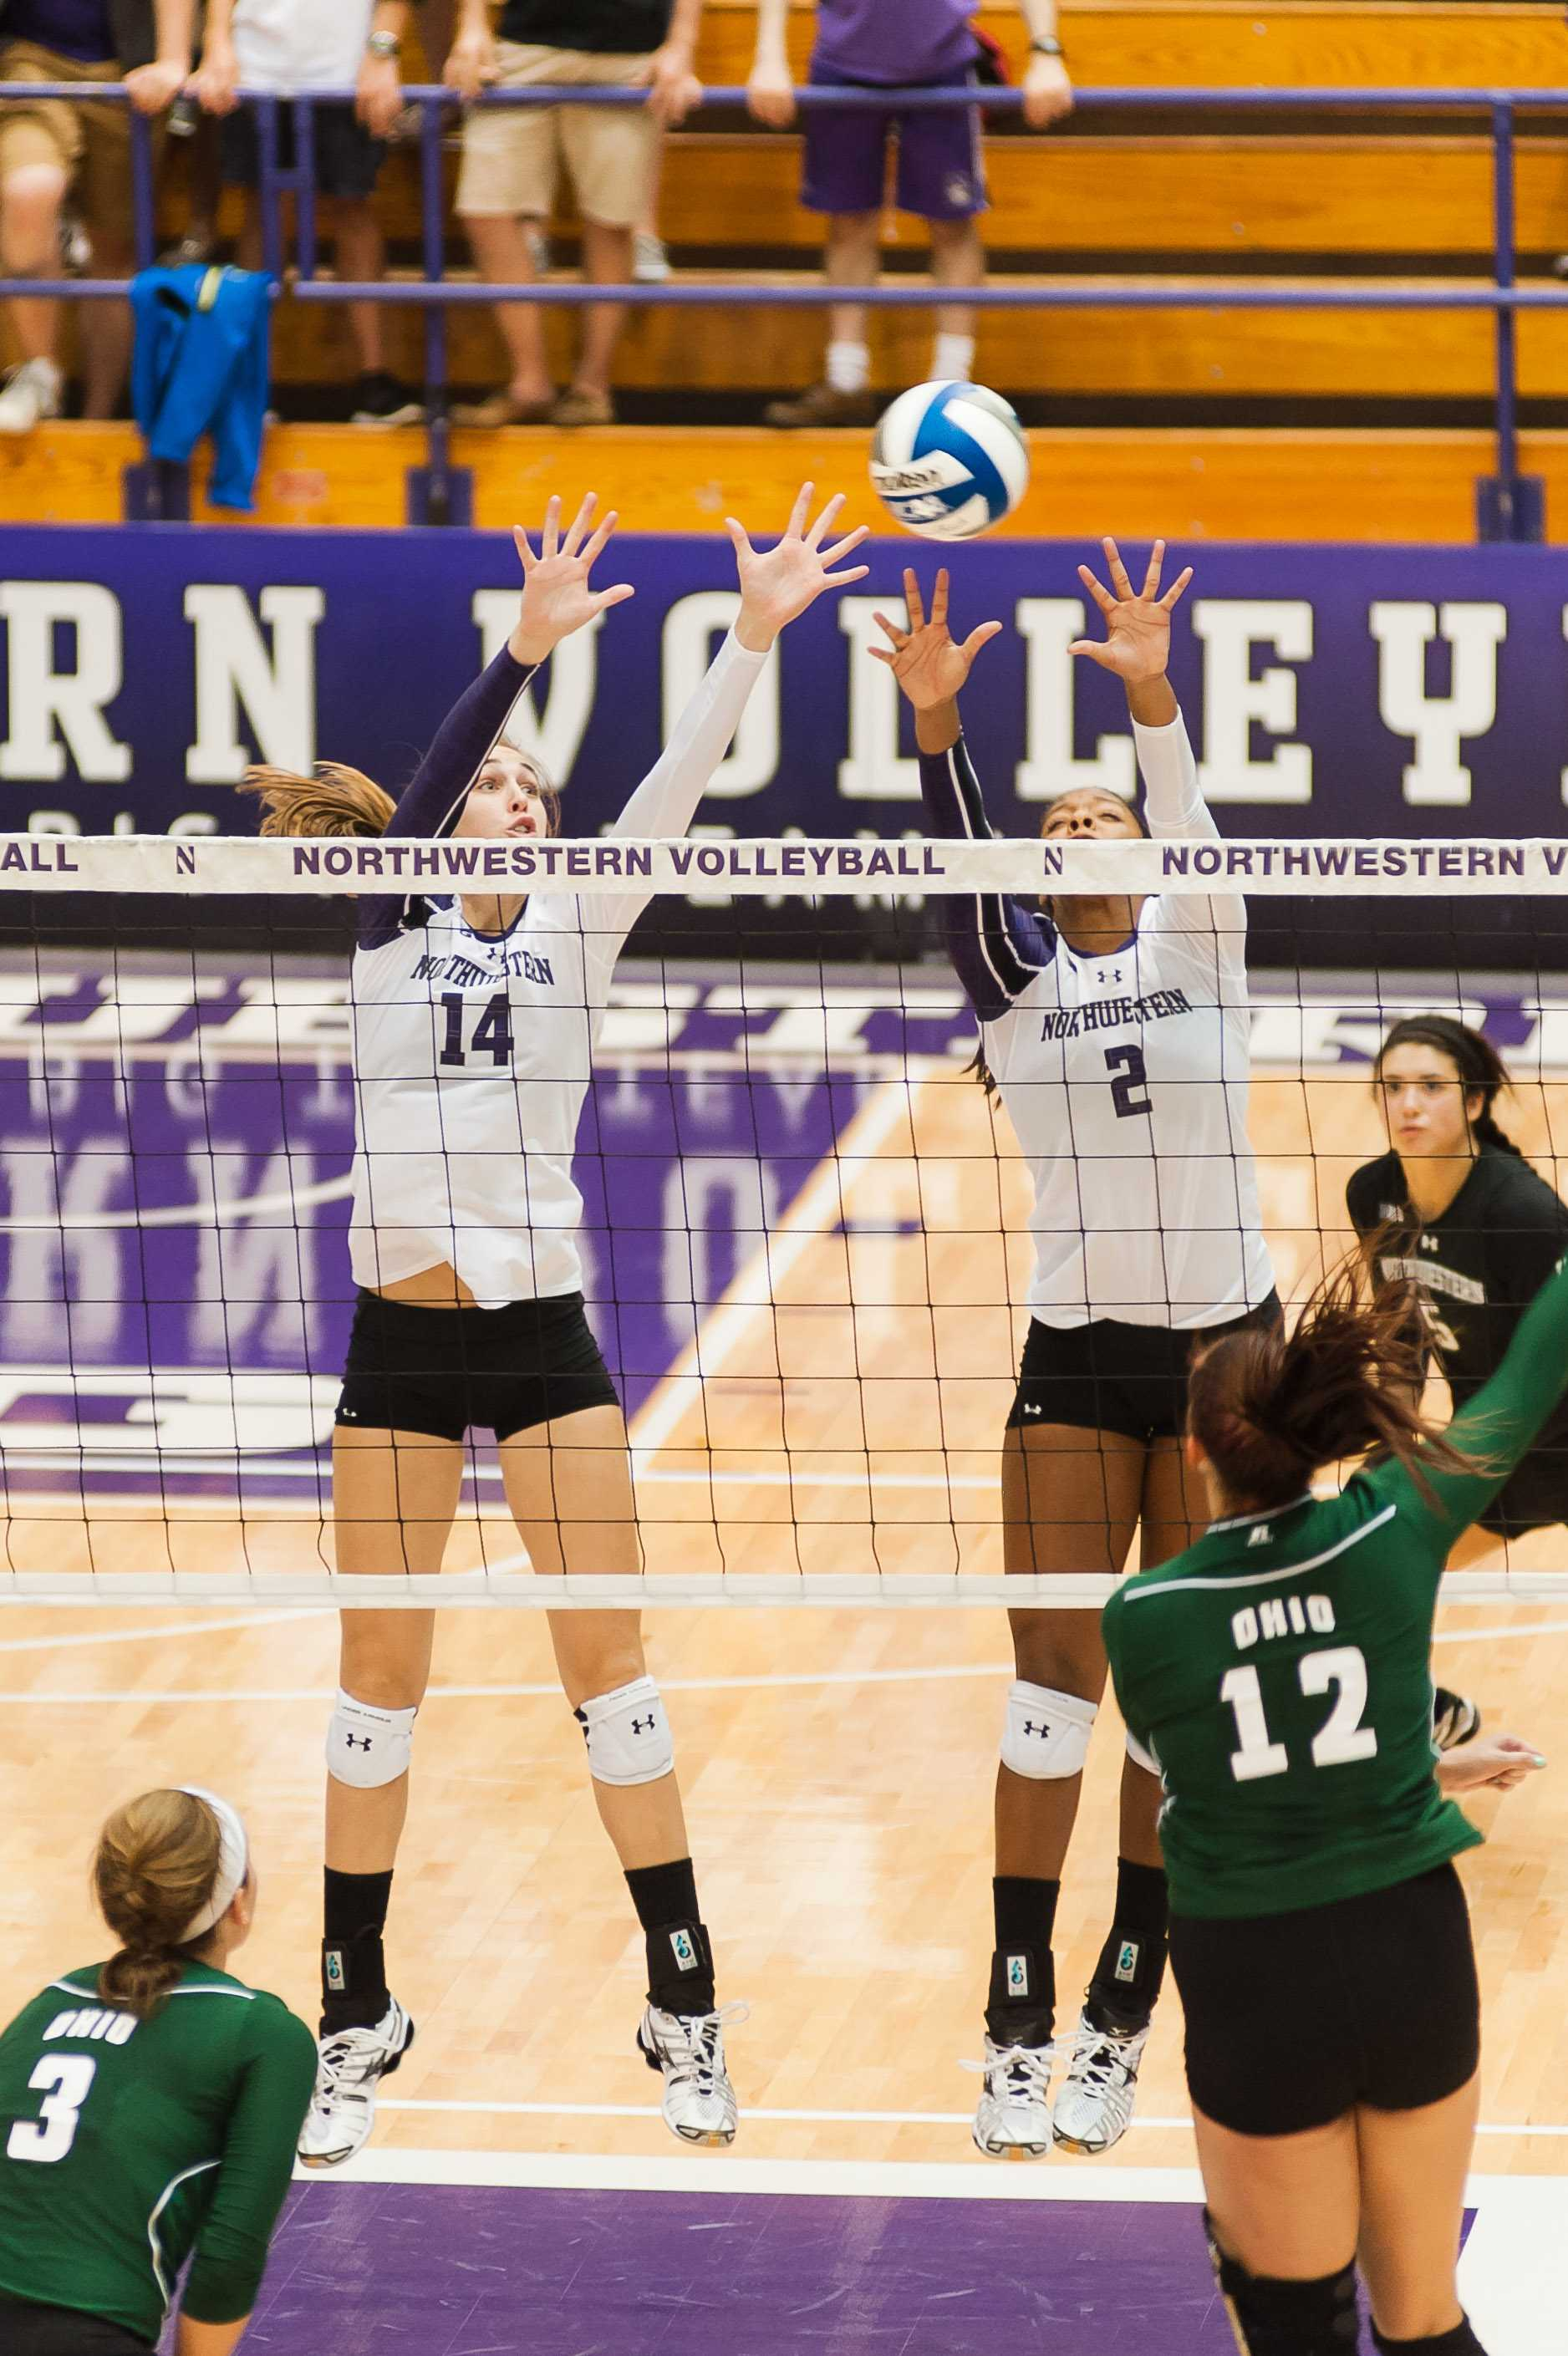 STANDING TALL Senior Katie Dutchman and freshman Symone Abbott go up a block. The pair combined for 22 kills against the Badgers, which was almost half of the Wildcats' 45.